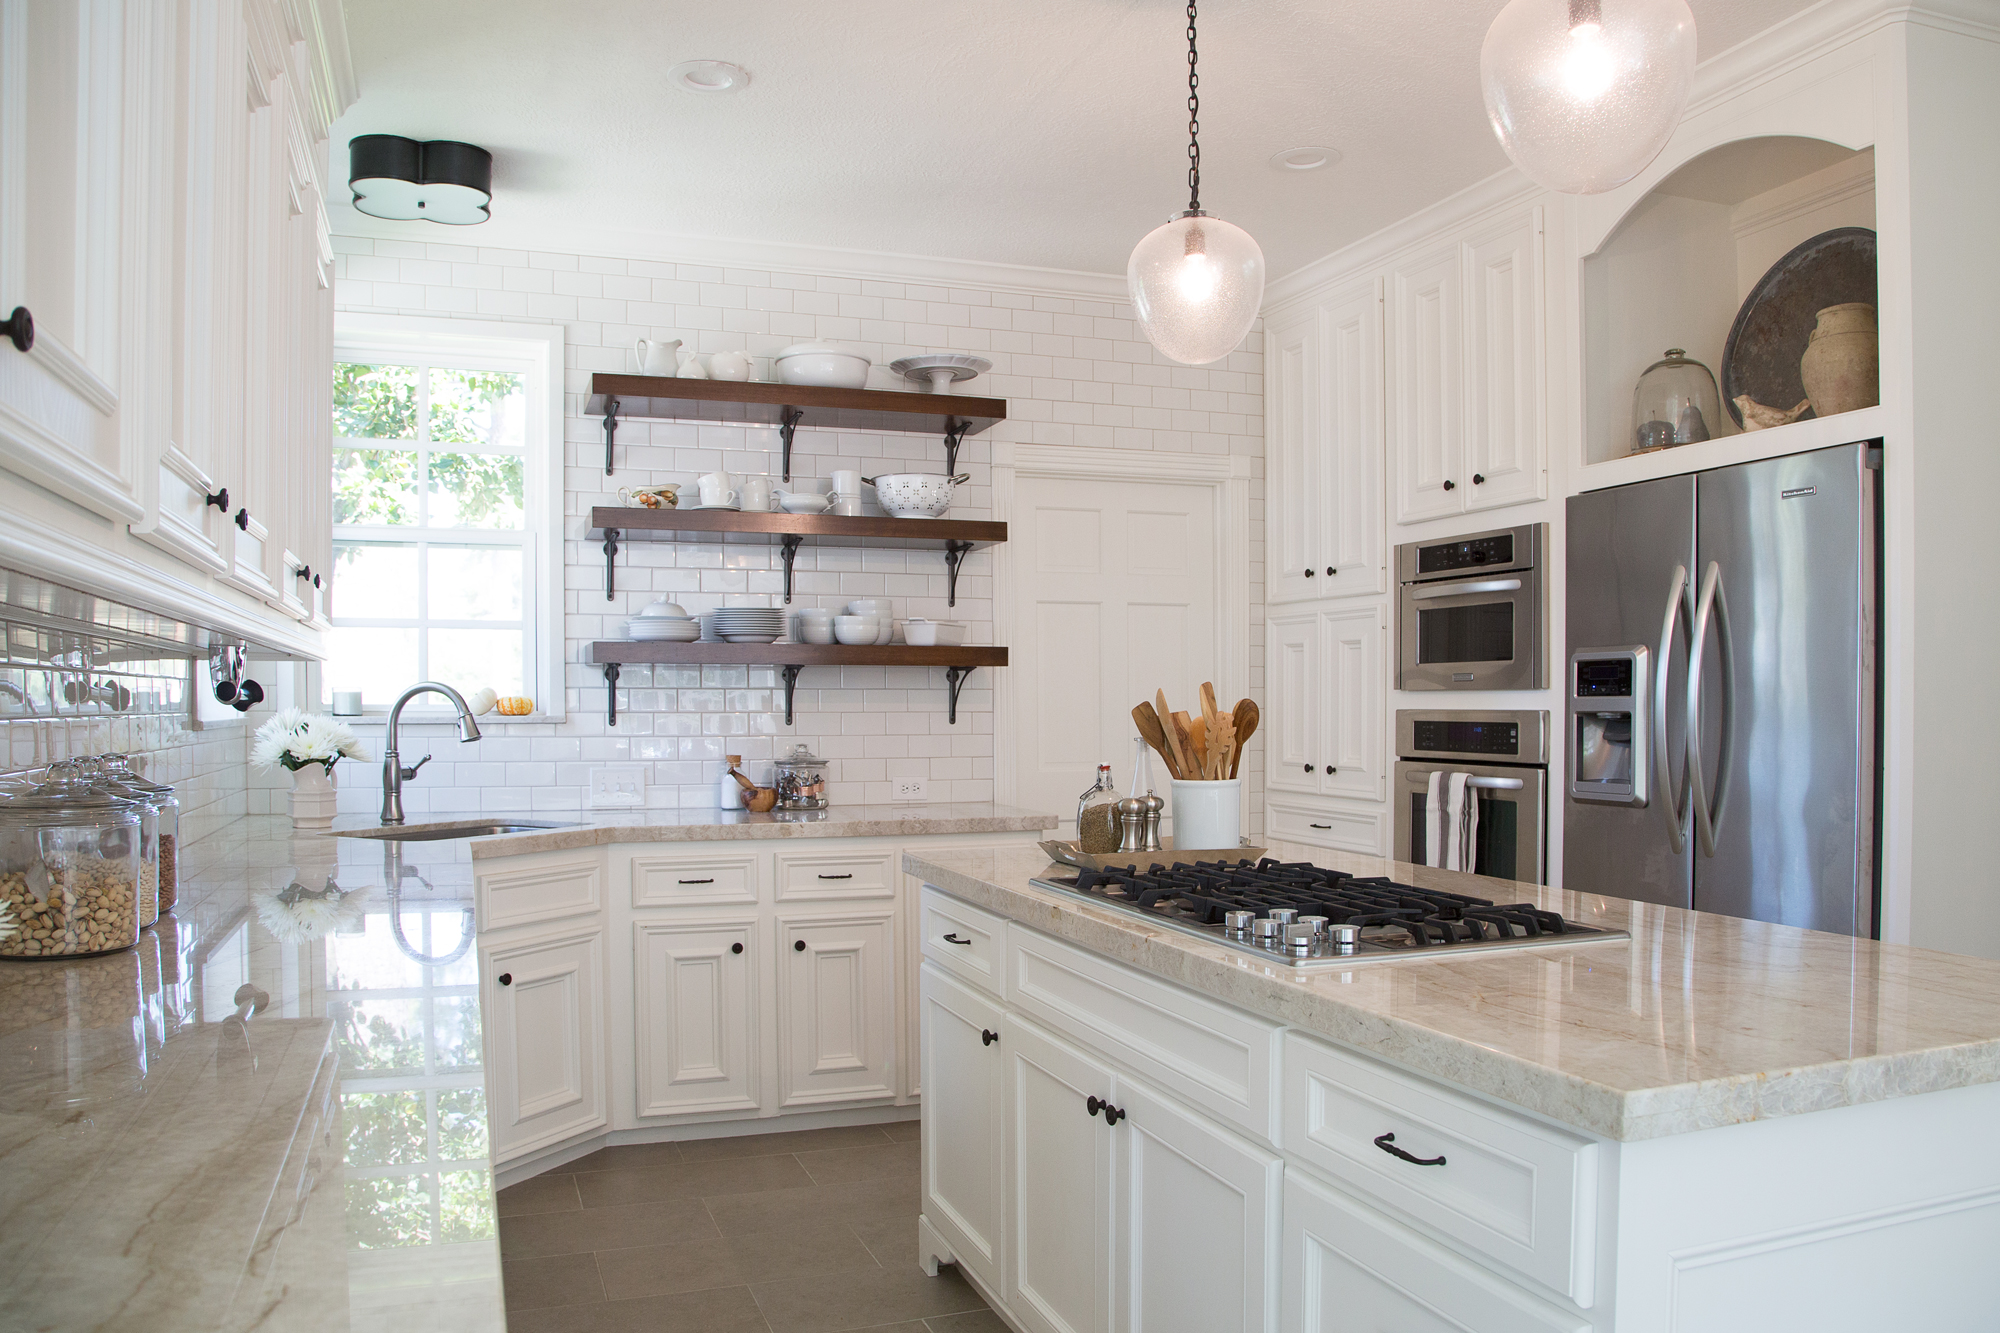 Kitchen walls, ceiling, and trim in white paint, BM White Dove | Designer: Carla Aston, Photographer: Tori Aston #whitepaint #whitepaintcolors